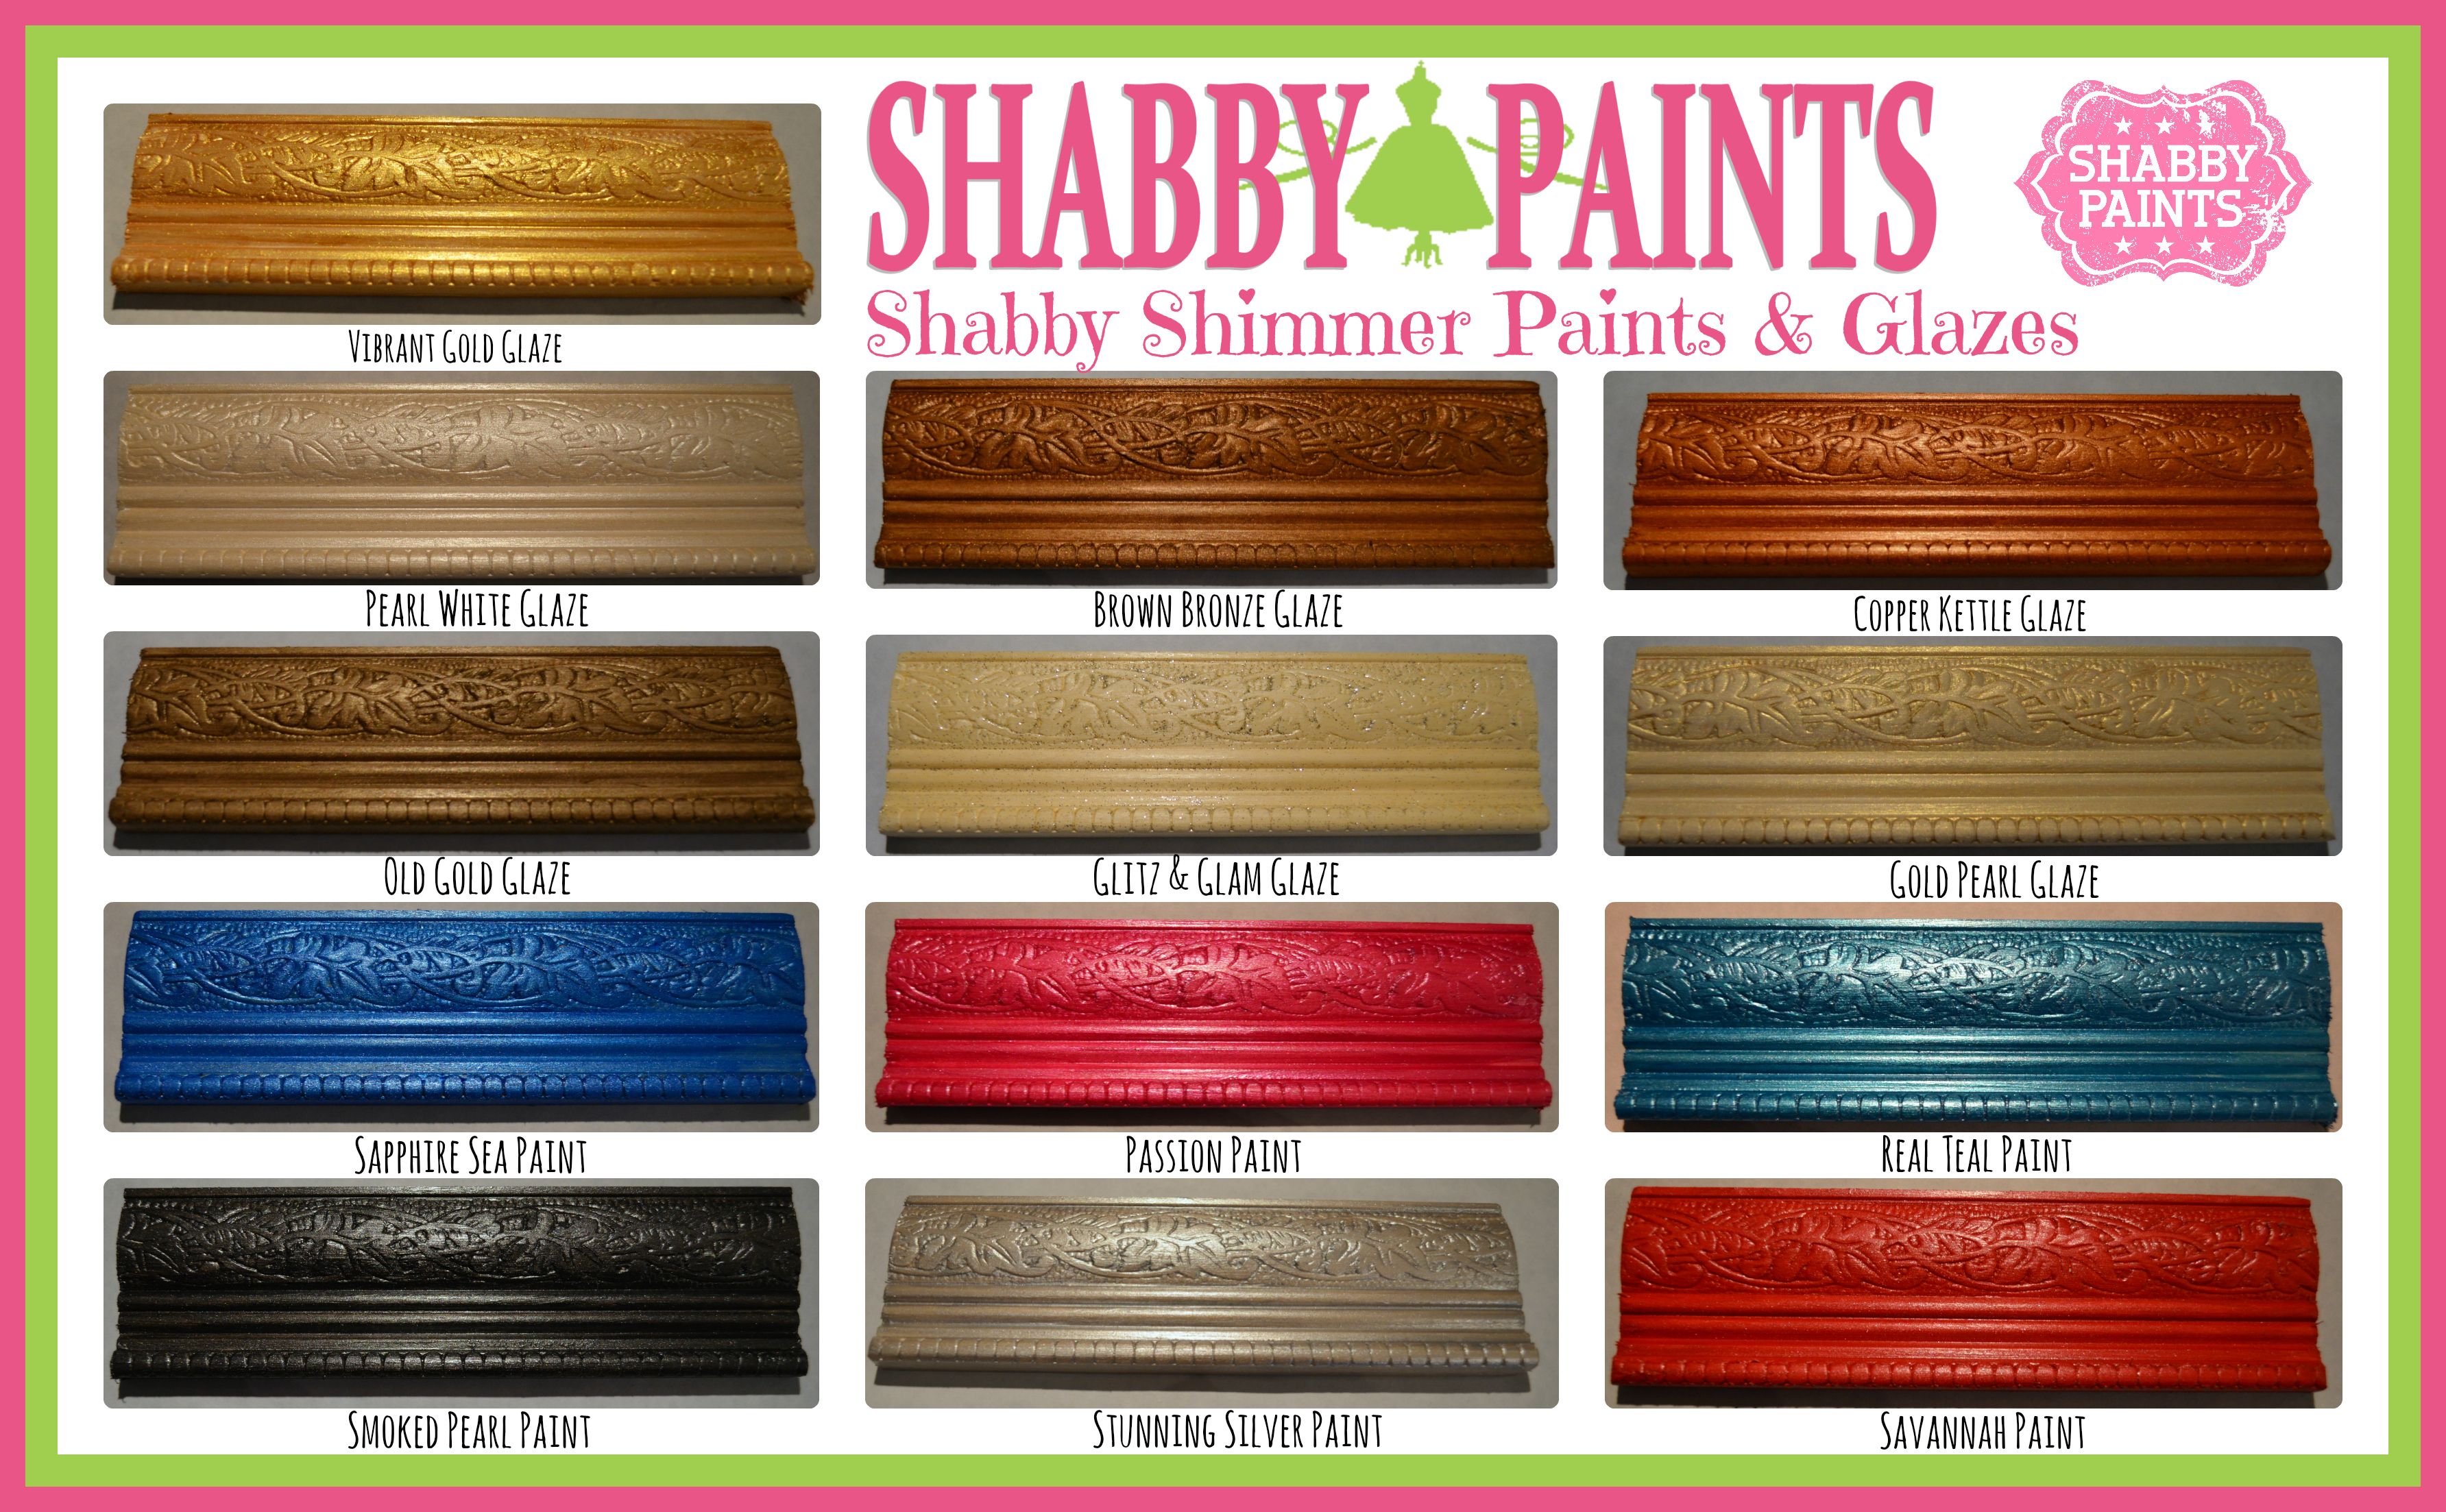 Our Products - Shabby Paints